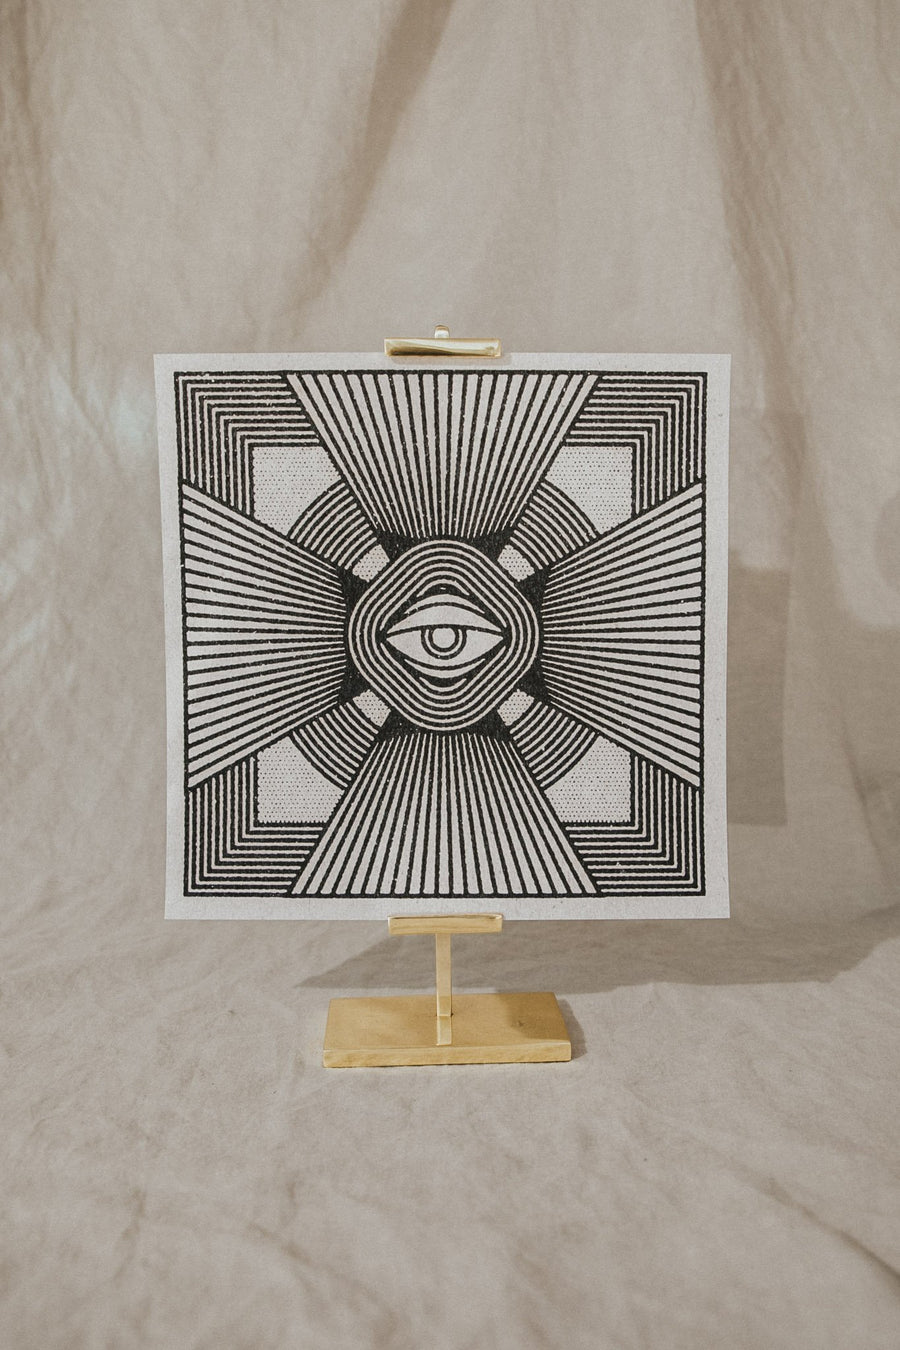 Realfunwow Objects 11 x 11 / Off-White / FINAL SALE Radiant Eye Print